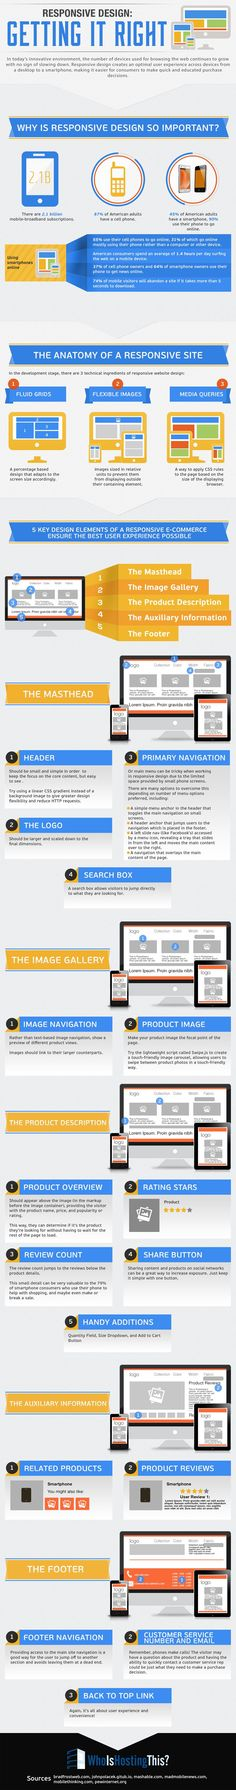 With a societal shift toward mobile, webmaster tool <em>WhoIsHostingThis?</em> has some tips for responsive web design, to ensure your content looks good everywhere.